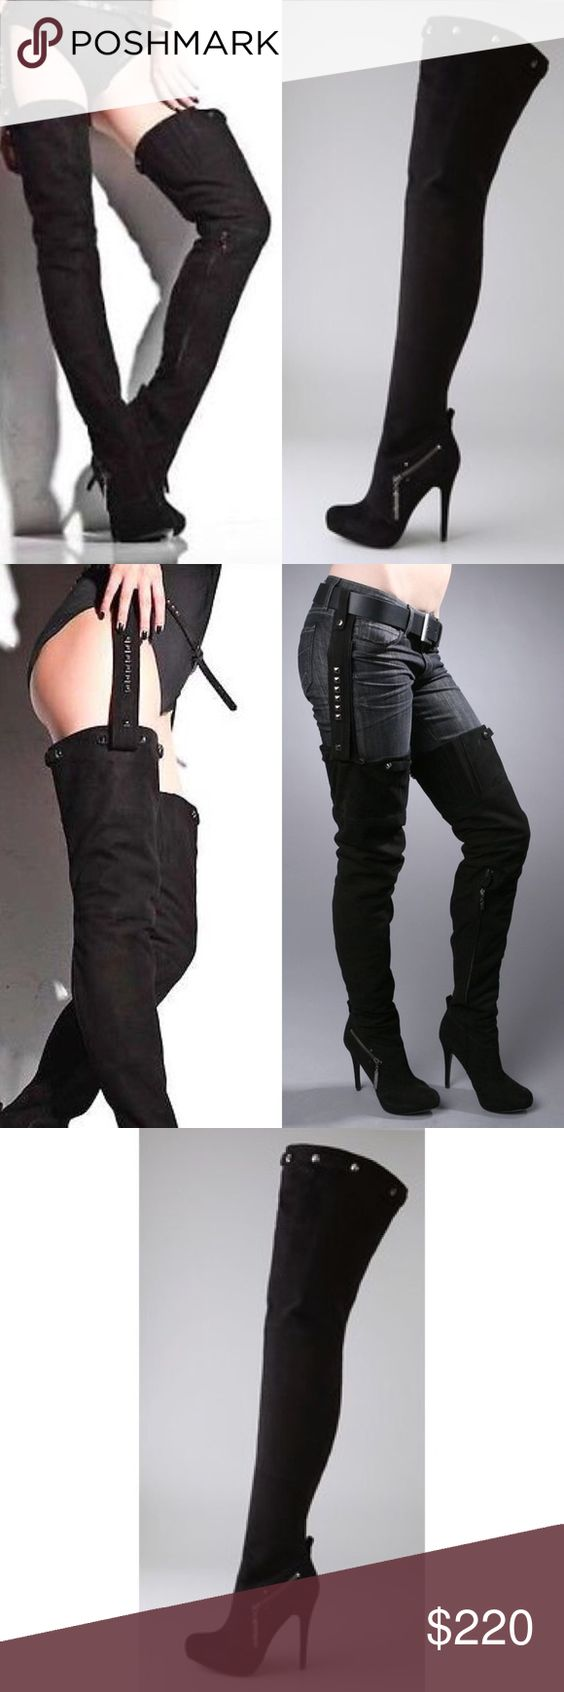 Report kane thigh high boots w removable harness 9 | High boots ...